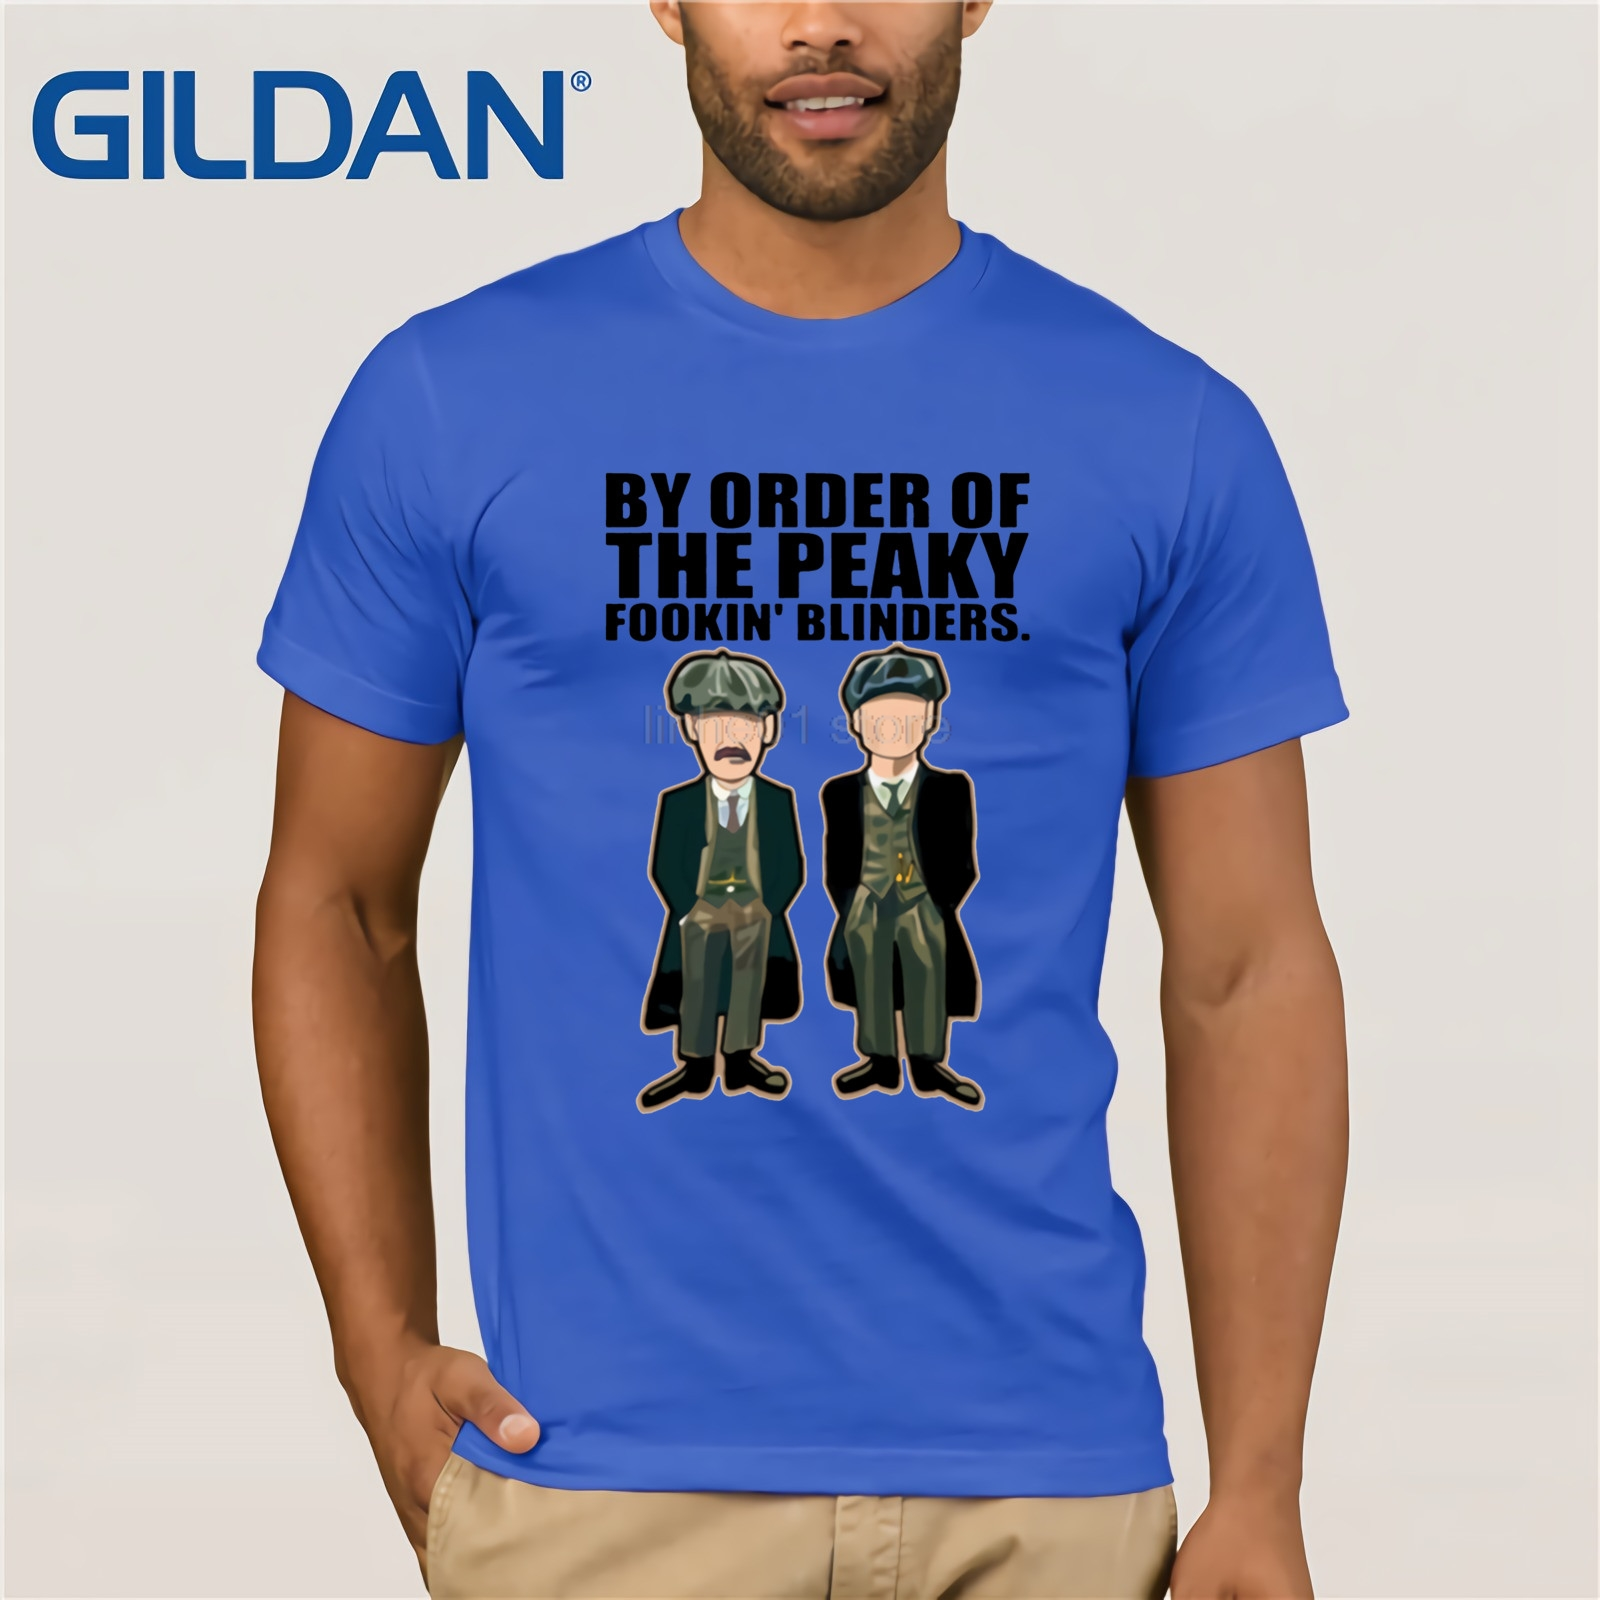 GILDAN Peaky blinders T Shirt Short Sleeved Cotton Tops Guys Heavy Metal TV Show T Shirts Printed Tops camisetas hombre in T Shirts from Men 39 s Clothing